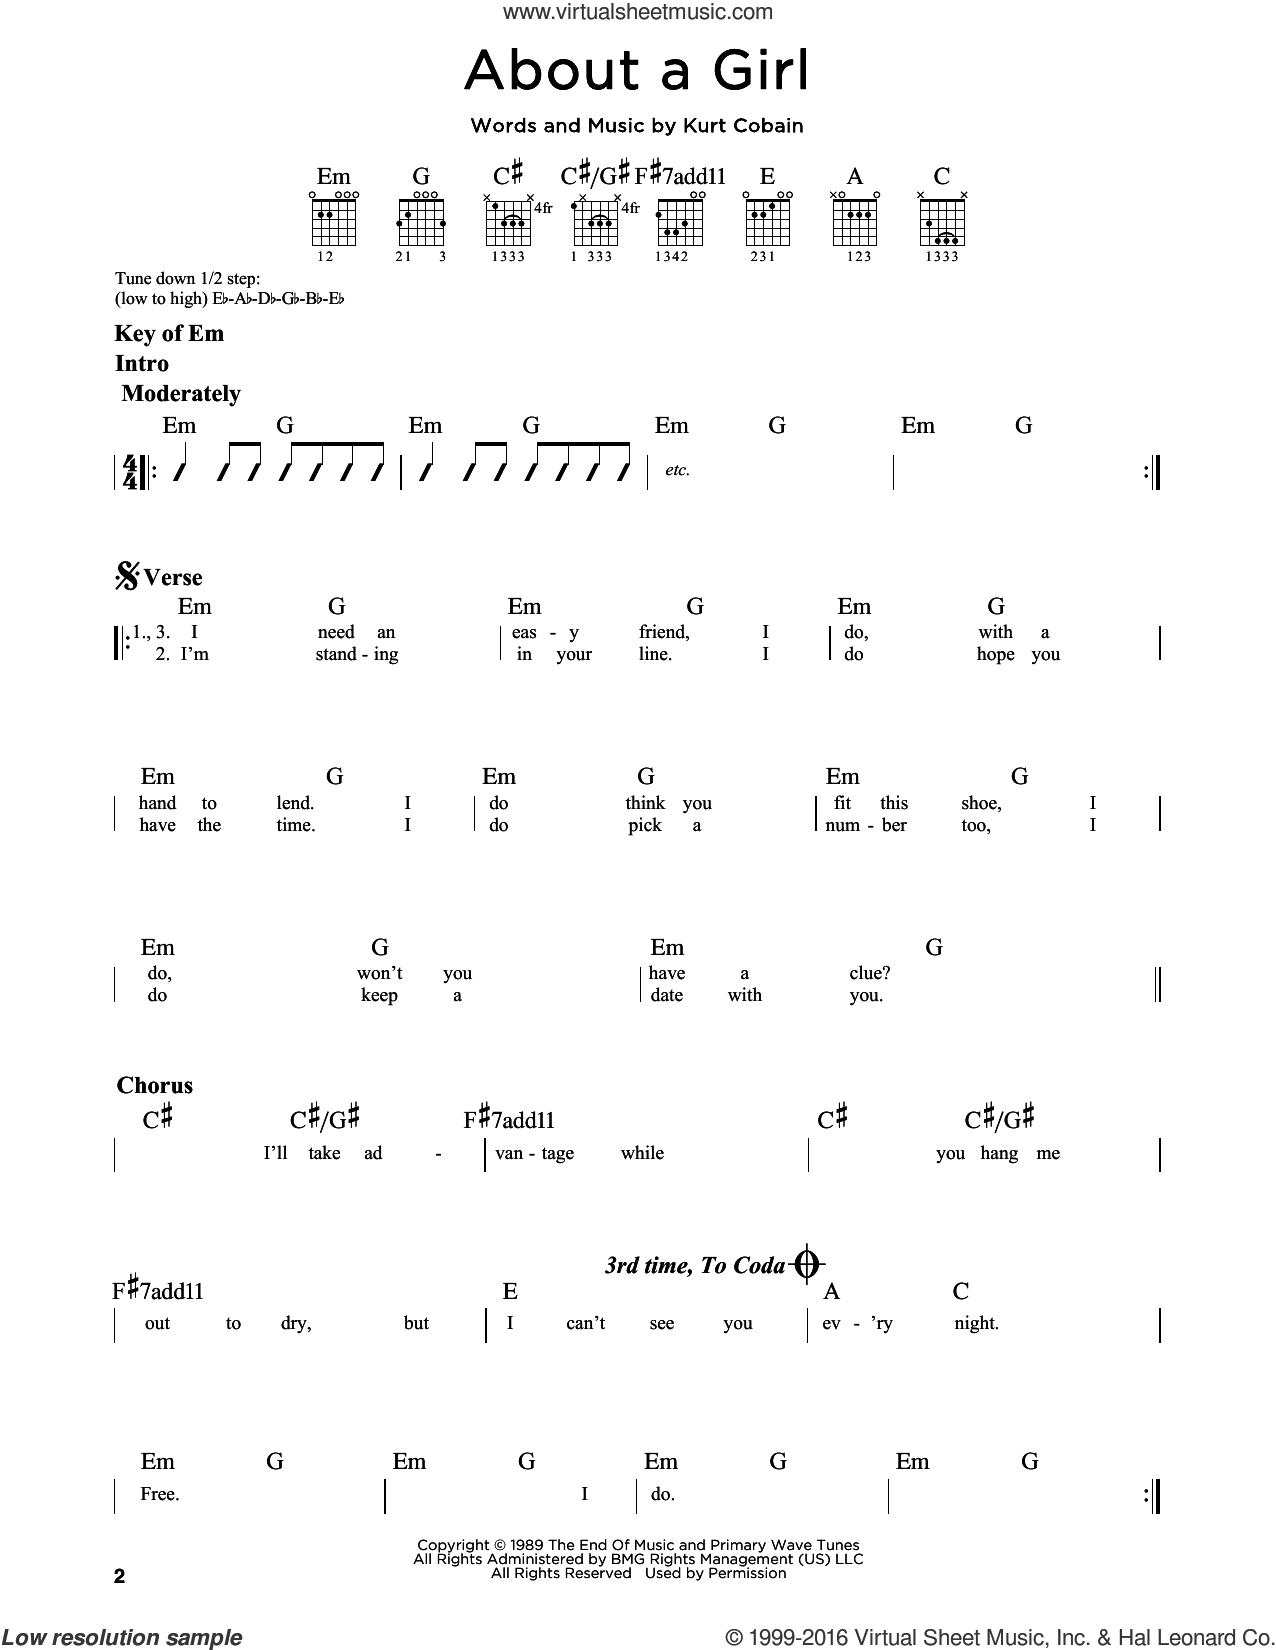 About A Girl sheet music for guitar solo (lead sheet) by Kurt Cobain